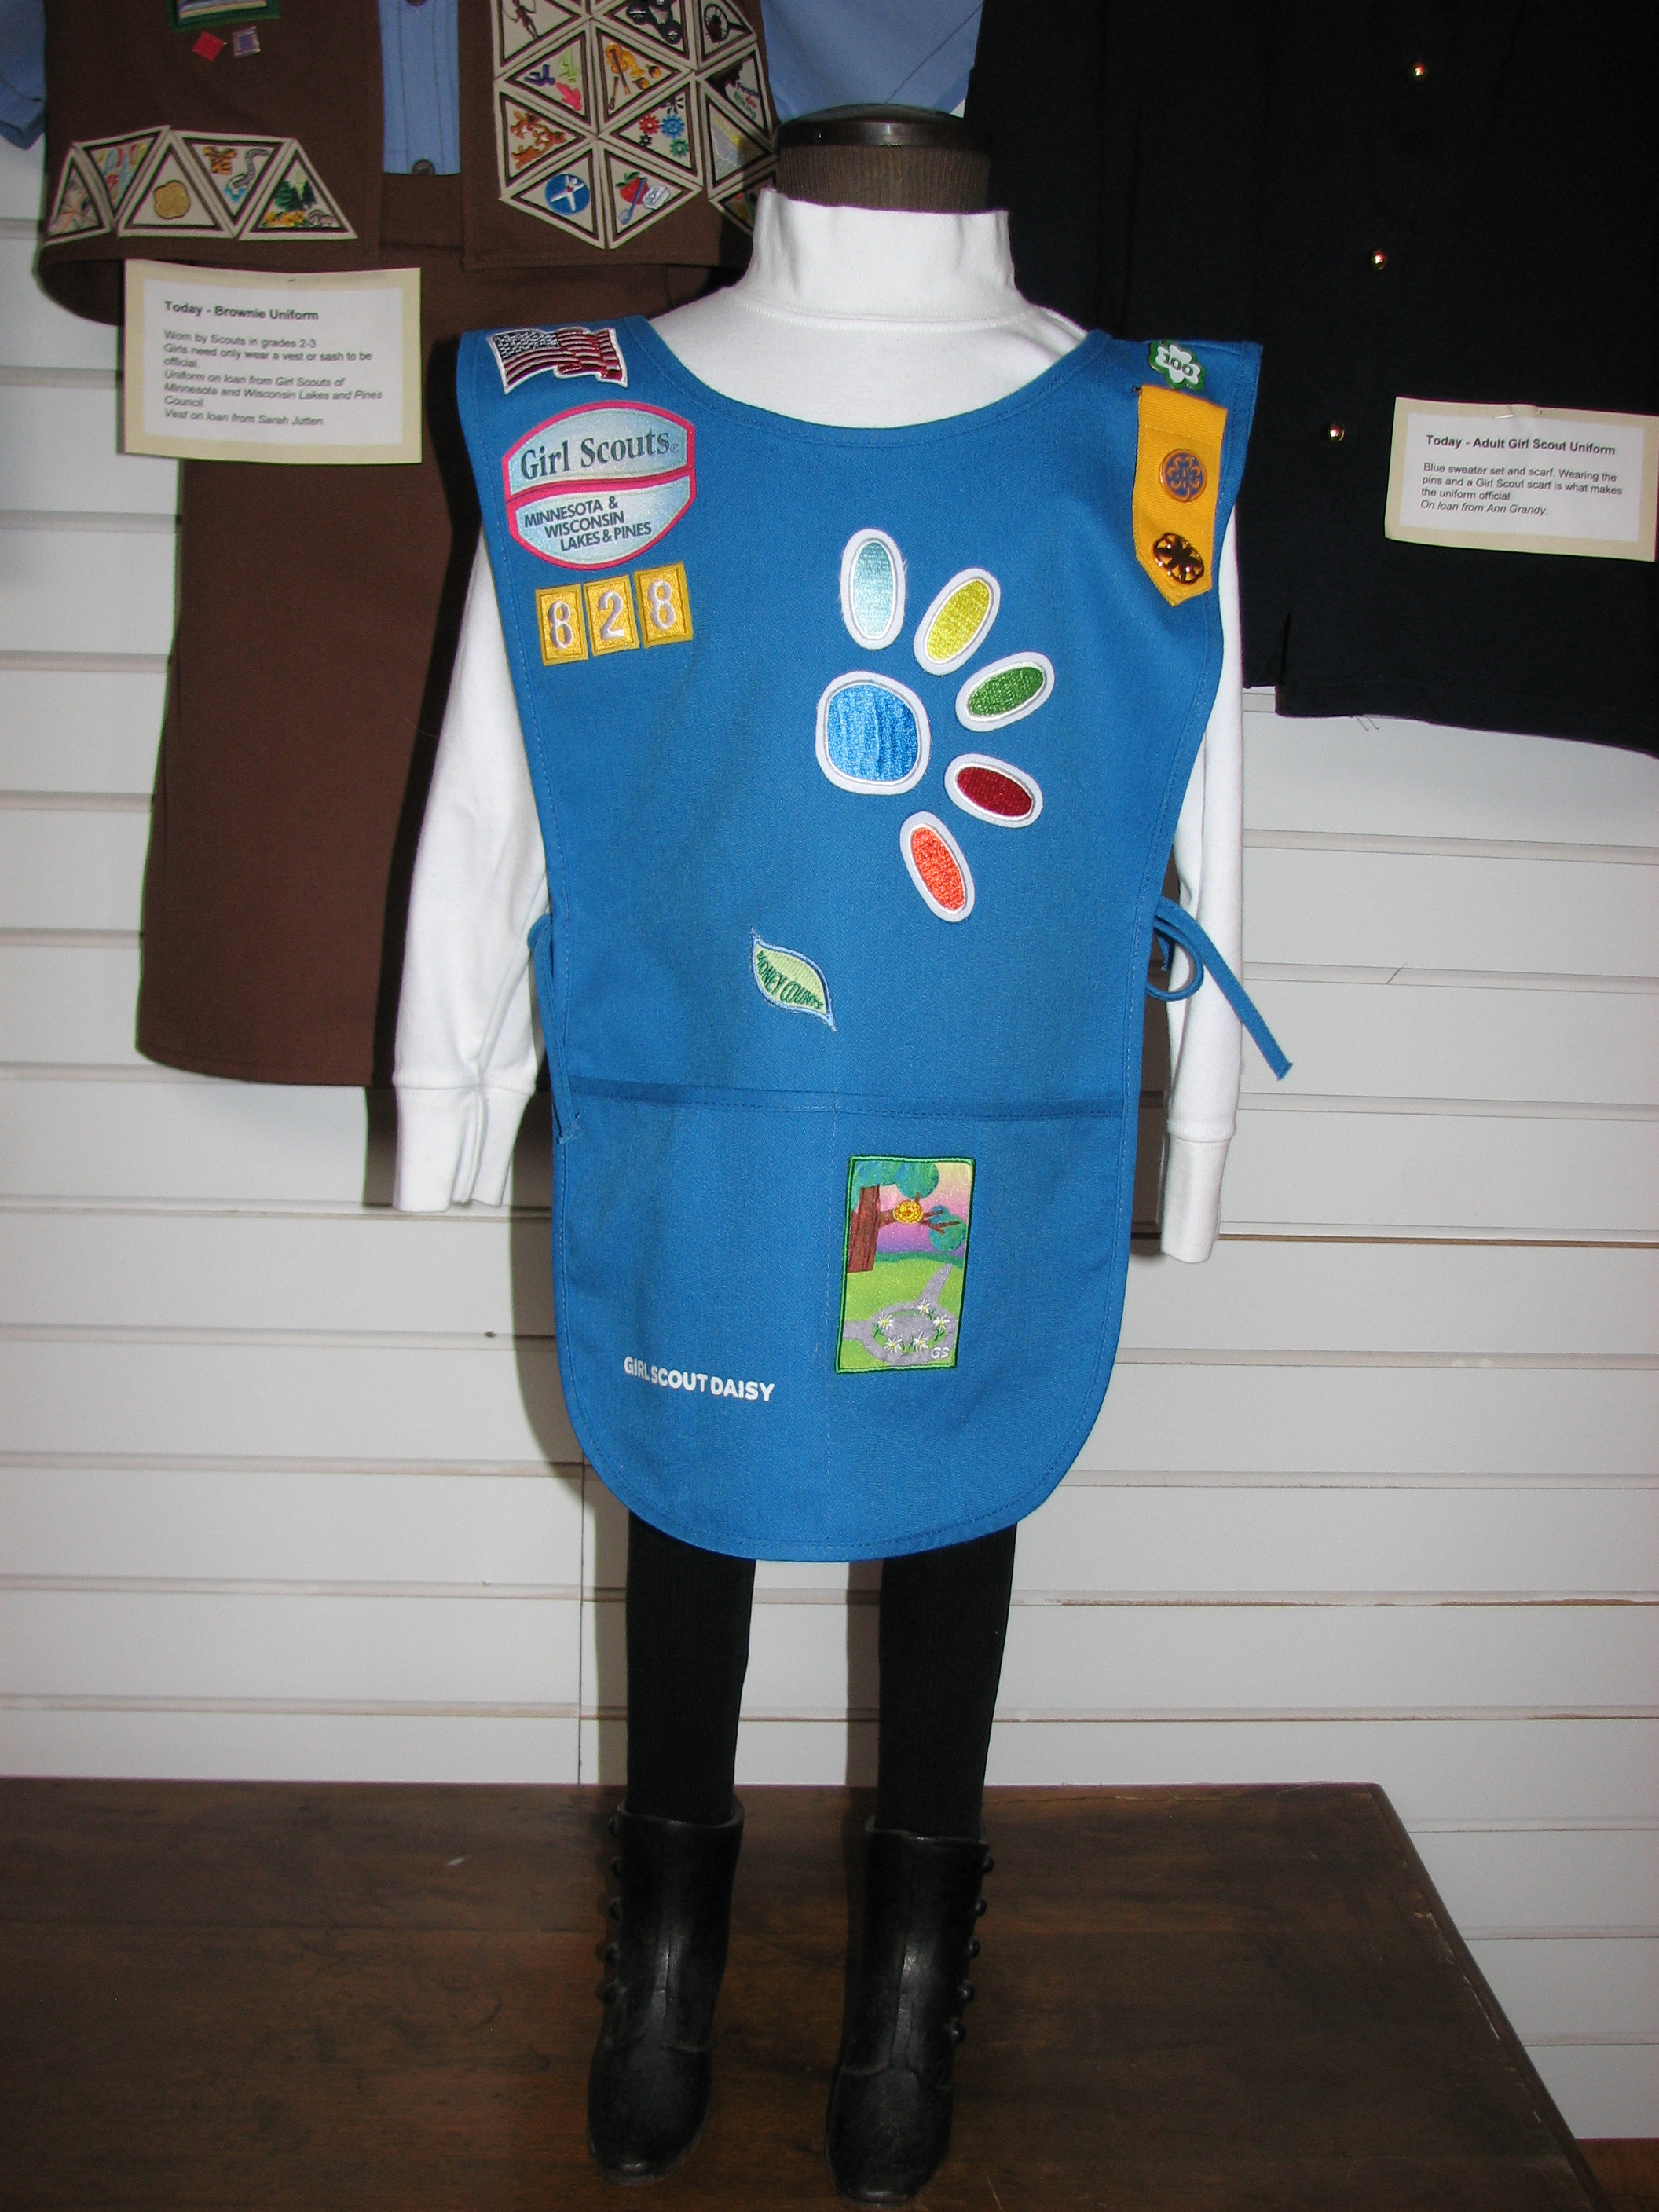 today s daisy girl scout uniform pope county museum